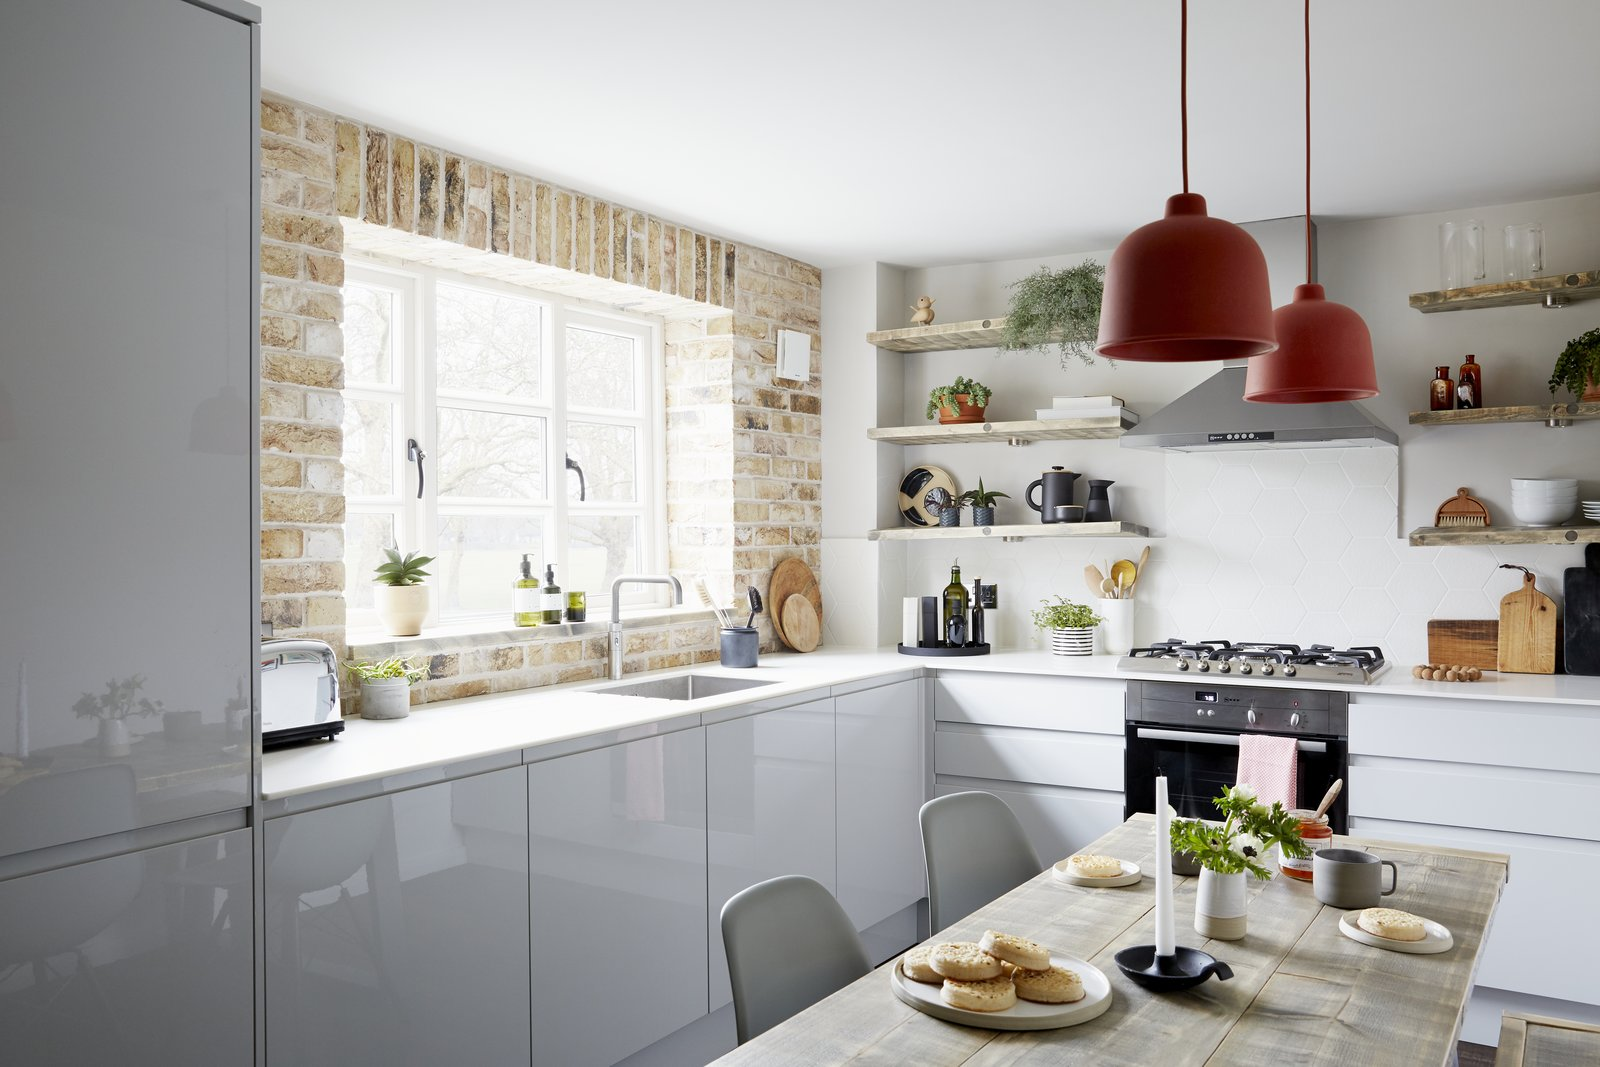 Kitchen, Ceramic Tile Backsplashe, Ceiling Lighting, Colorful Cabinet, and Undermount Sink A brick wall and reclaimed timber shelves add character and warmth against the modern grey kitchen units.  Eames DSW dining chairs and pendant lights by Muuto bring colourful Scandi touches.  Best Photos from Artillery House